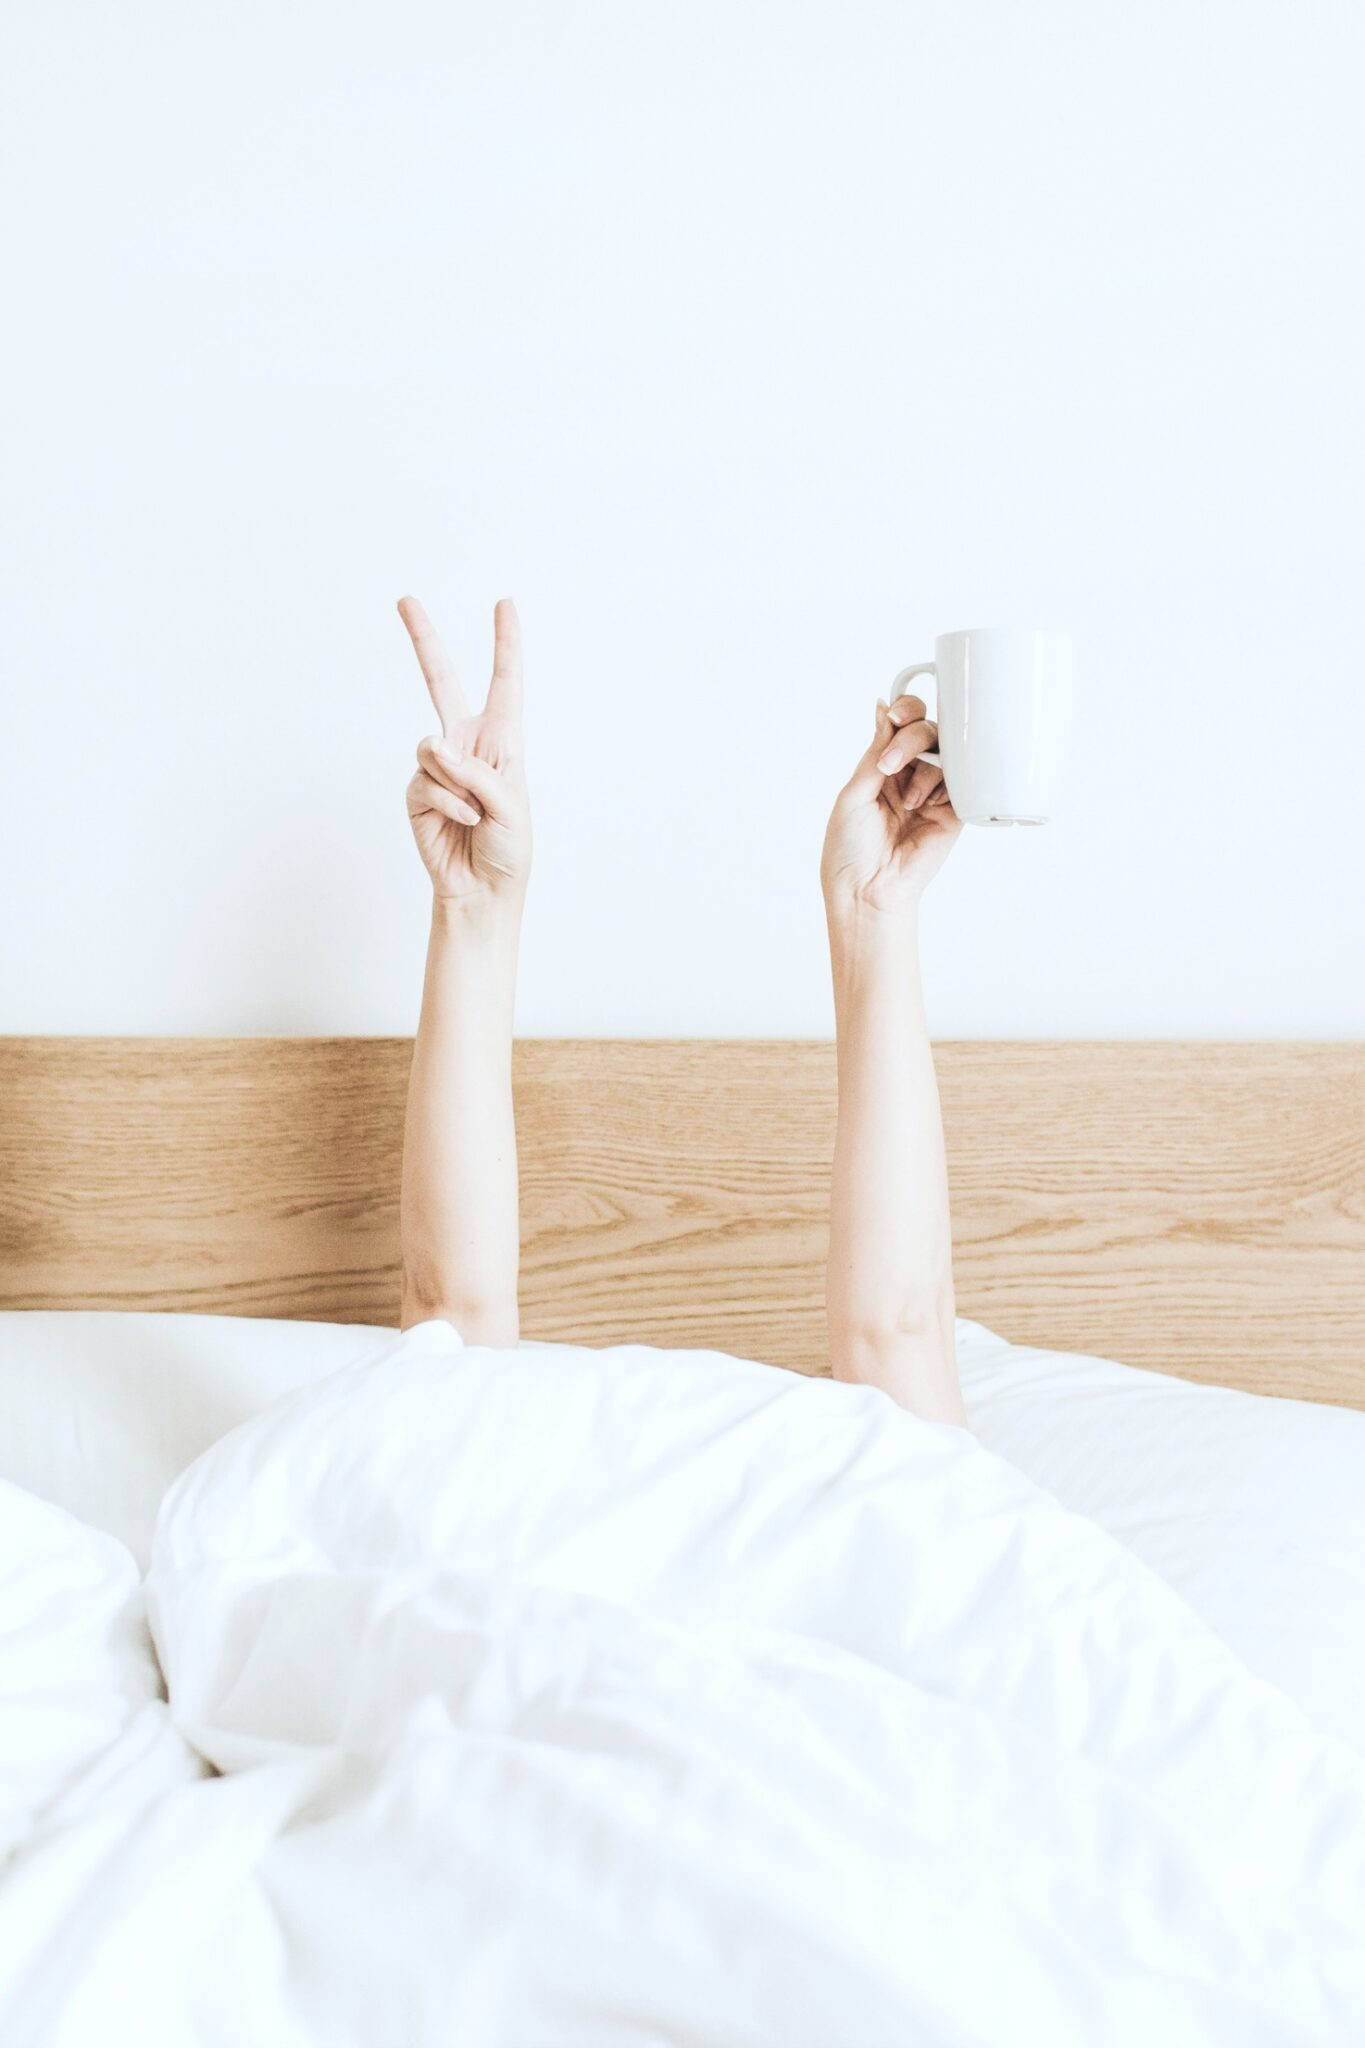 A woman hides under her sheets in bed and raises a peace sign and a coffee mug.